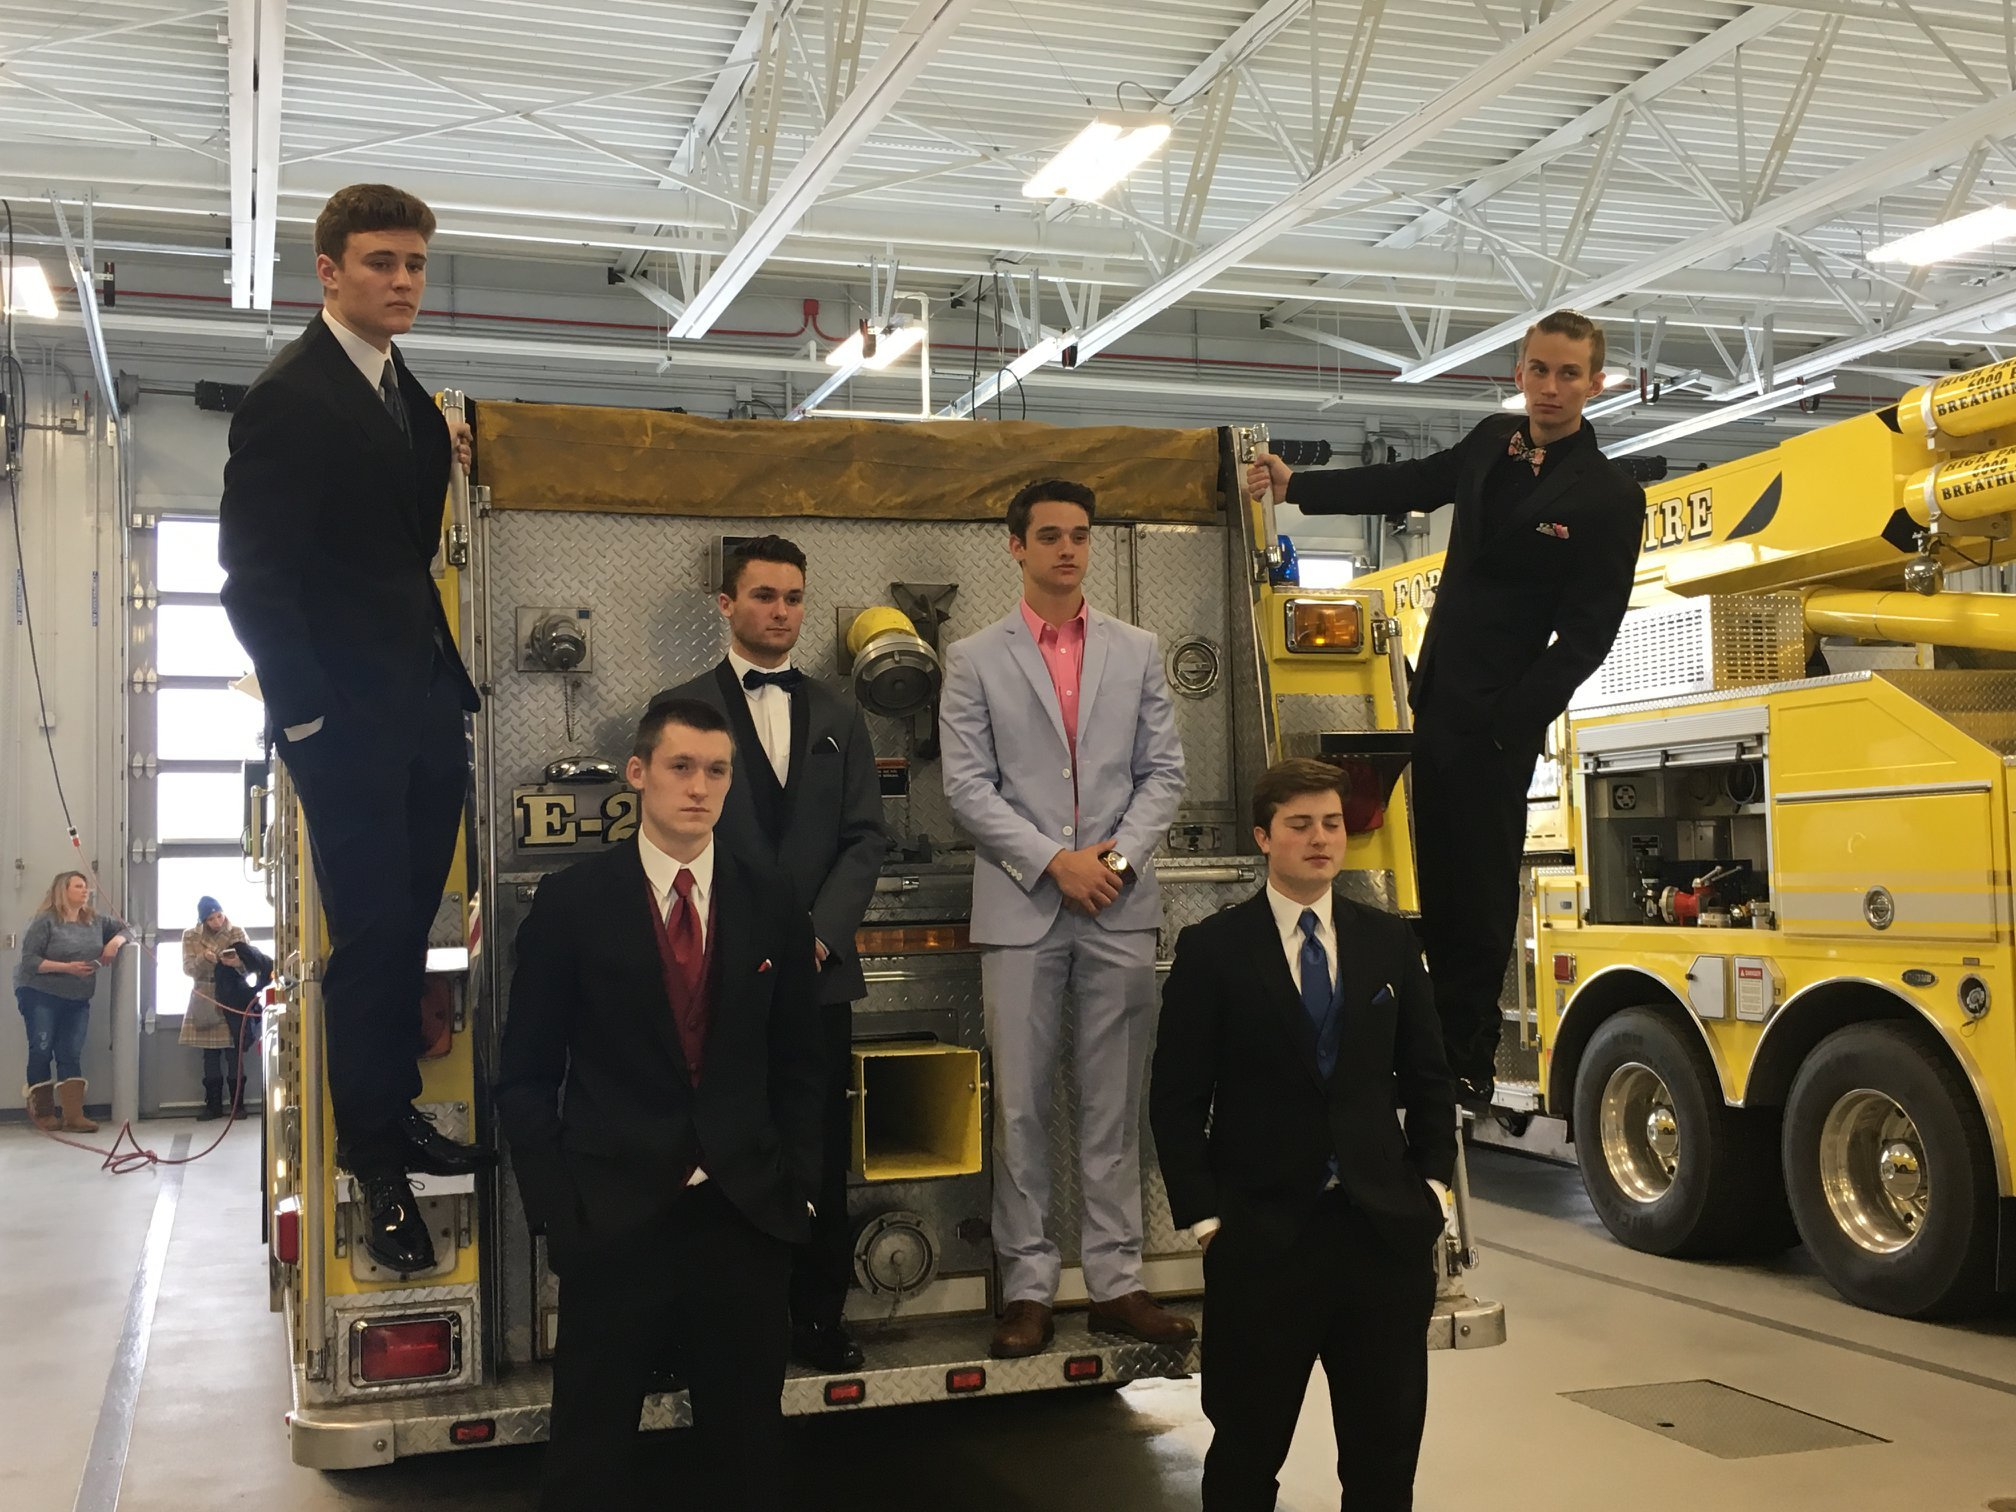 The students posed in their formal clothes on firetrucks and in the firehouse. (Source: Forest Lake Fire Department)